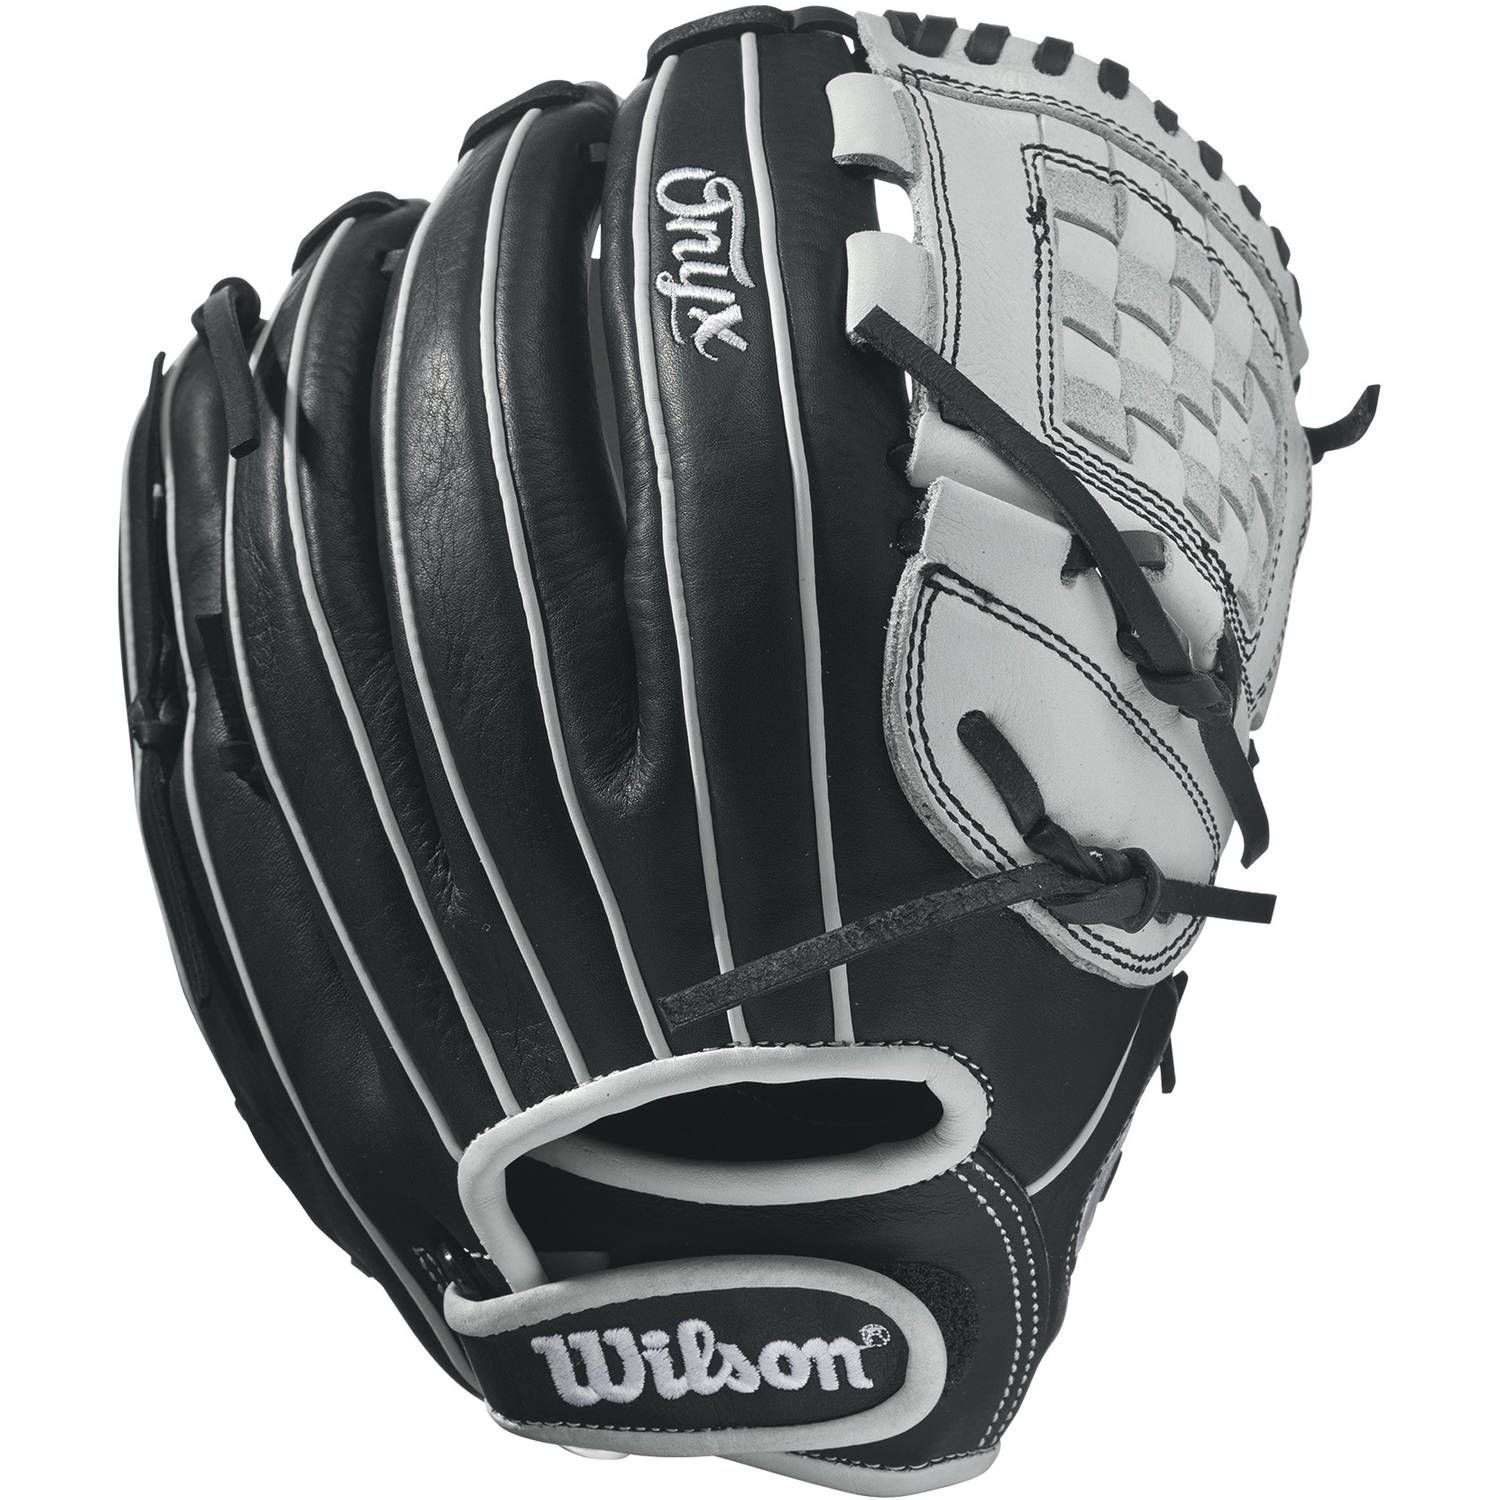 Wilson Onyx 12 Fastpitch Softball Glove Left Hand Throw 41 25 Reg 120 In 2020 Softball Gloves Fastpitch Softball Gloves Wilson Softball Gloves